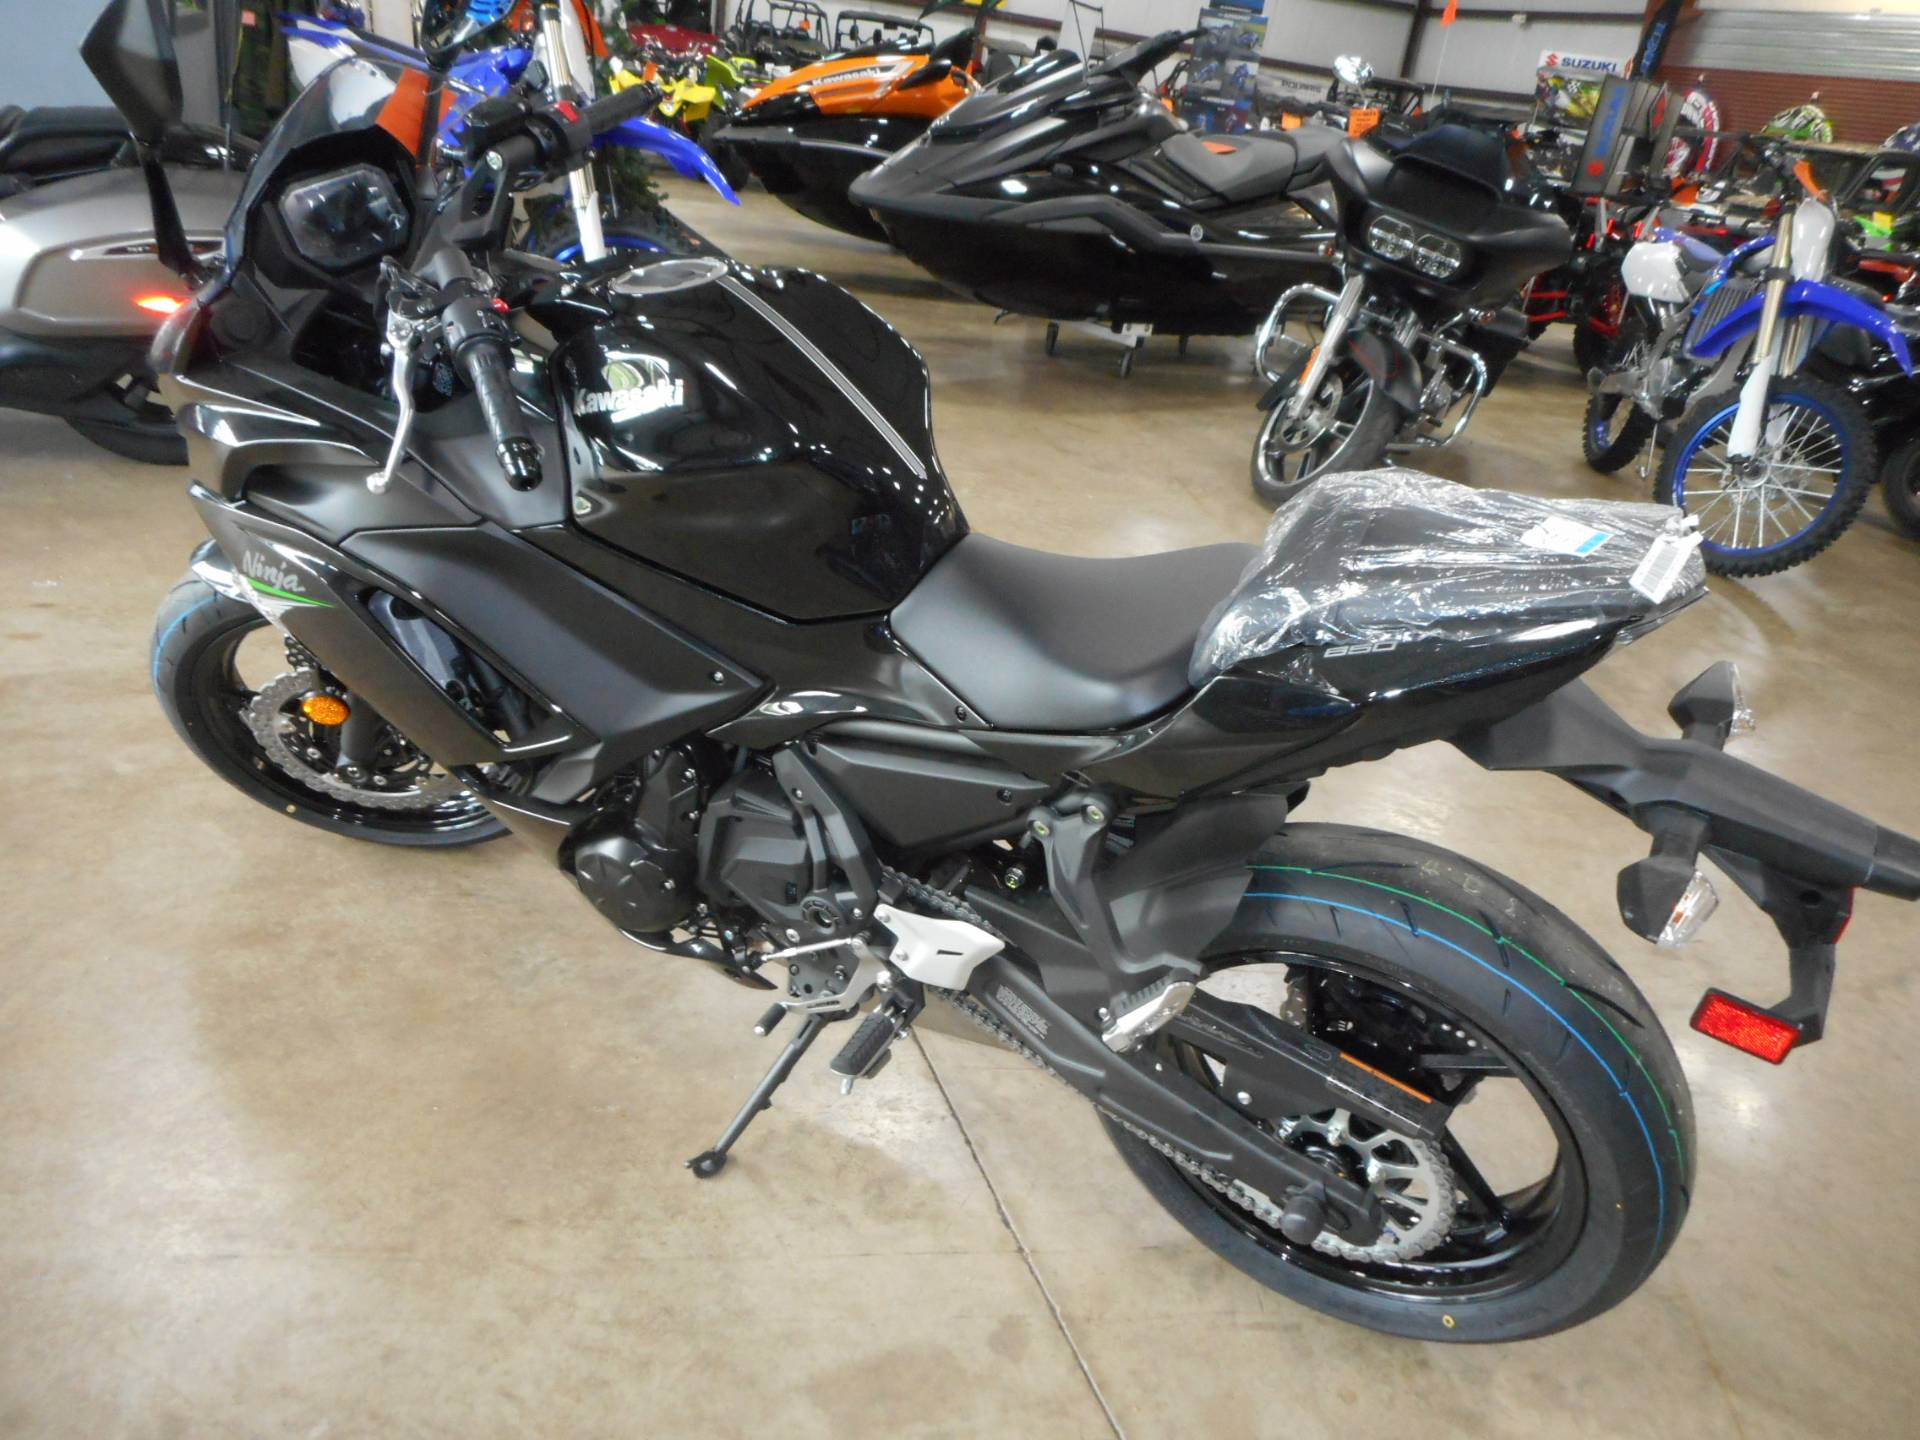 2020 Kawasaki Ninja 650 ABS in Belvidere, Illinois - Photo 7